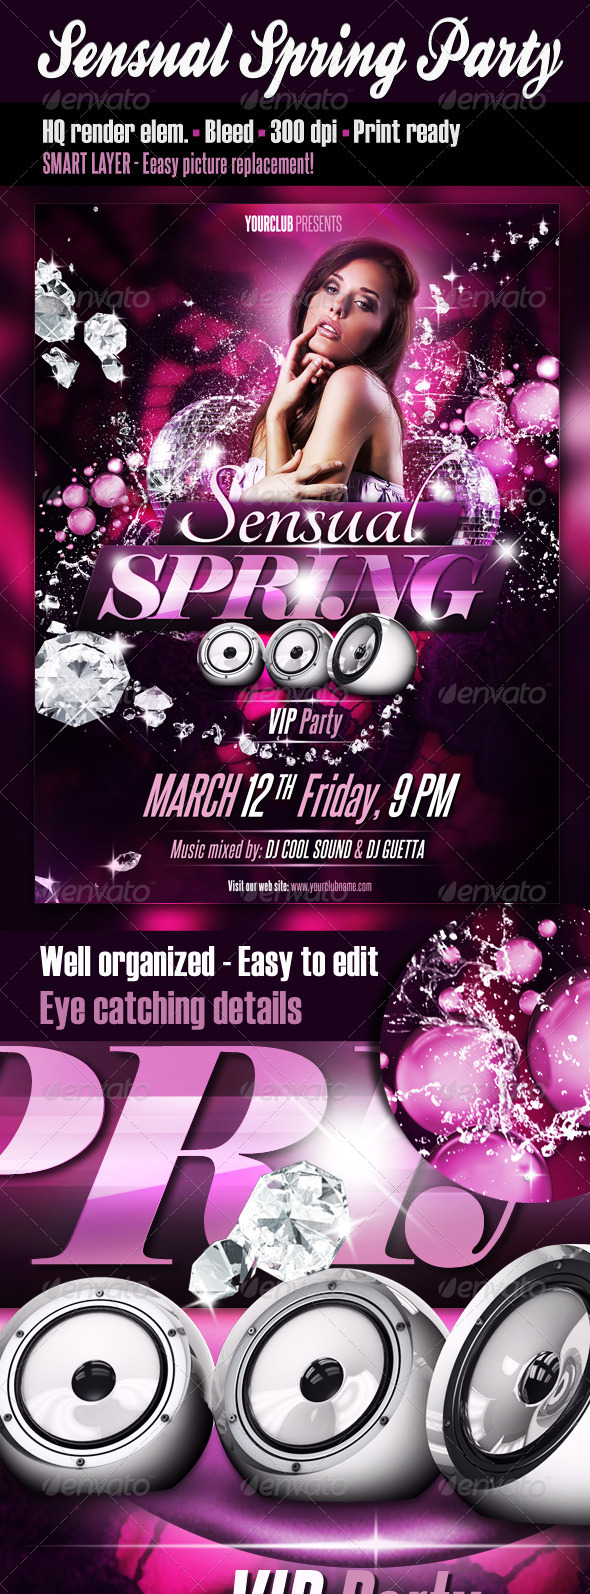 Sensual Spring Party Flyer - Clubs & Parties Events